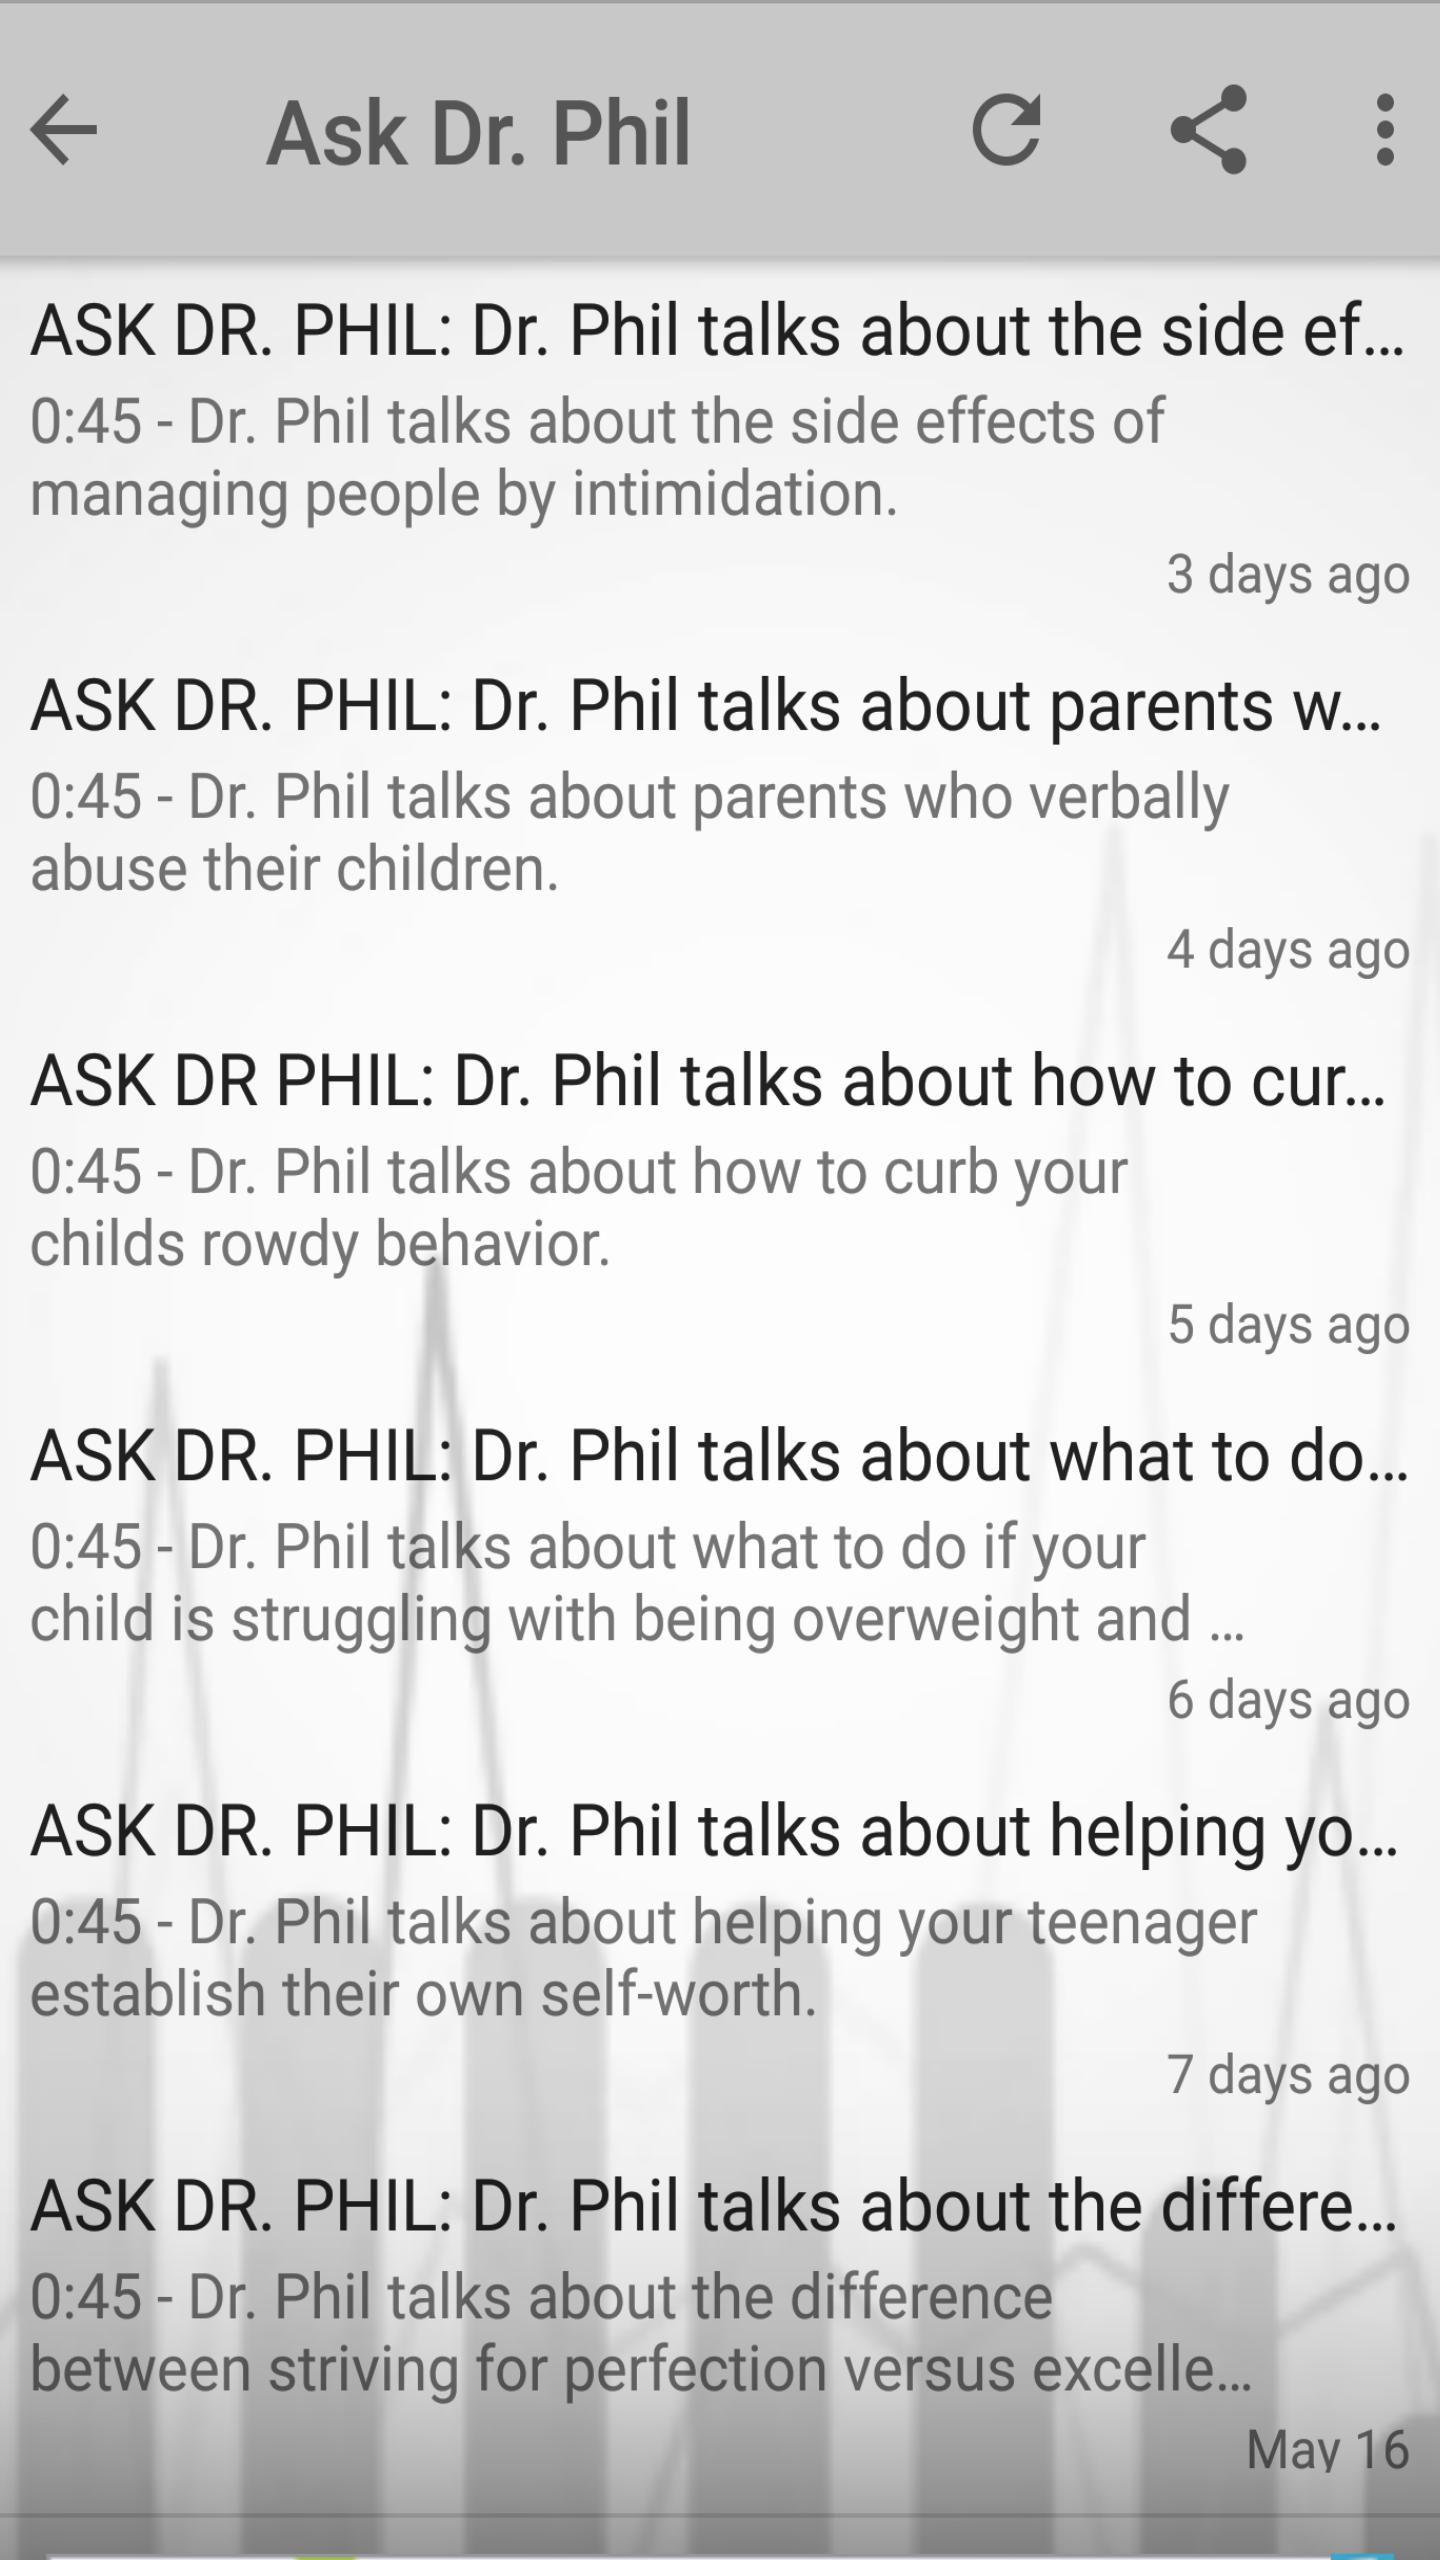 Dr Phil Podcast, Daily Update for Android - APK Download